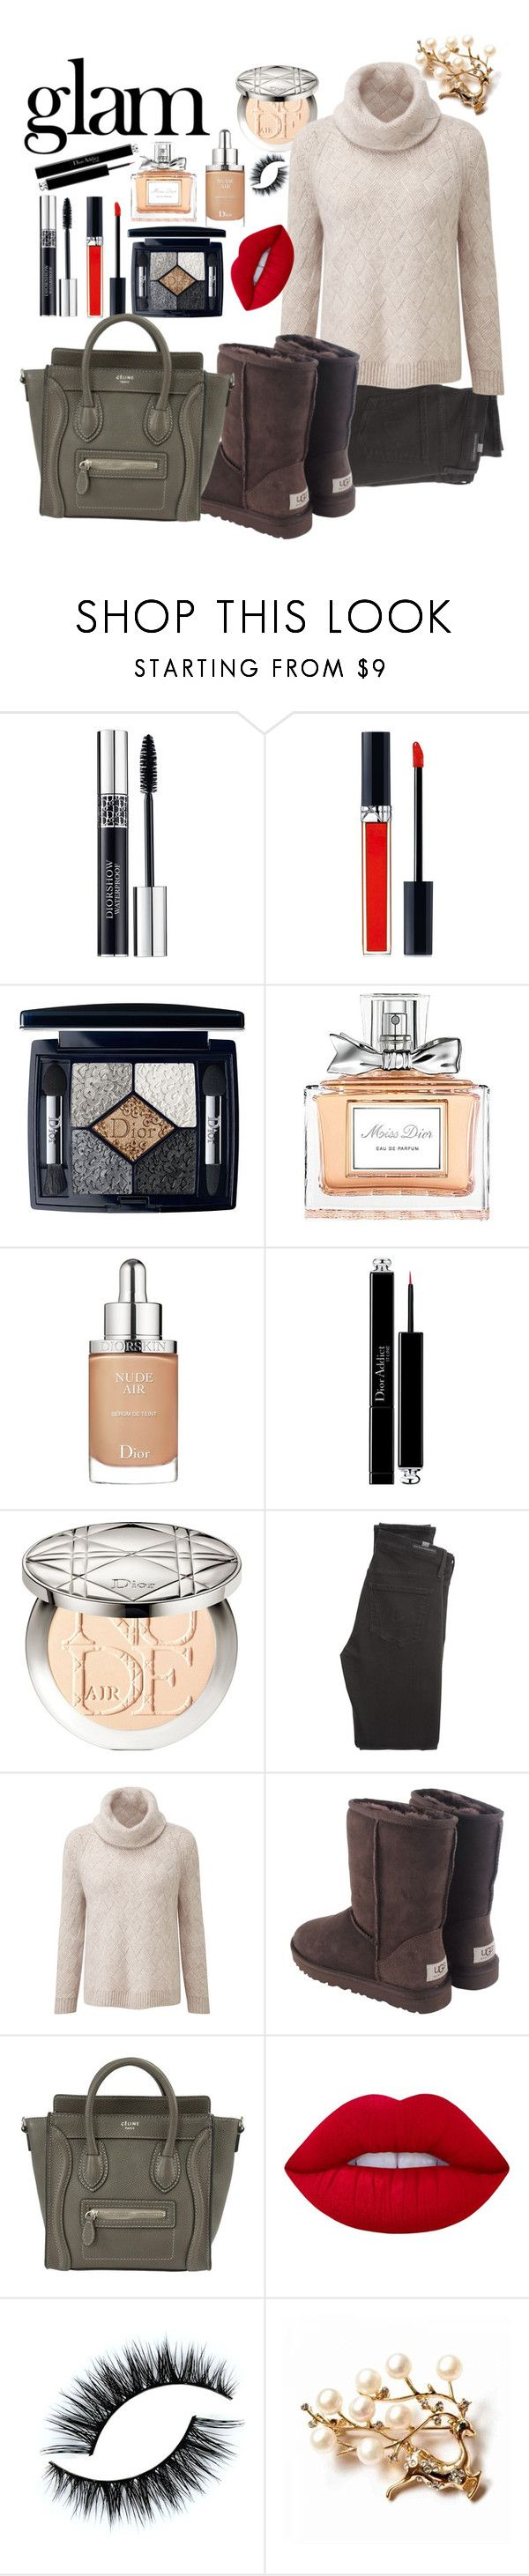 """""""Senza titolo #256"""" by hilary180491 ❤ liked on Polyvore featuring beauty, Naeem Khan, Christian Dior, Citizens of Humanity, UGG Australia, CÉLINE and Lime Crime"""